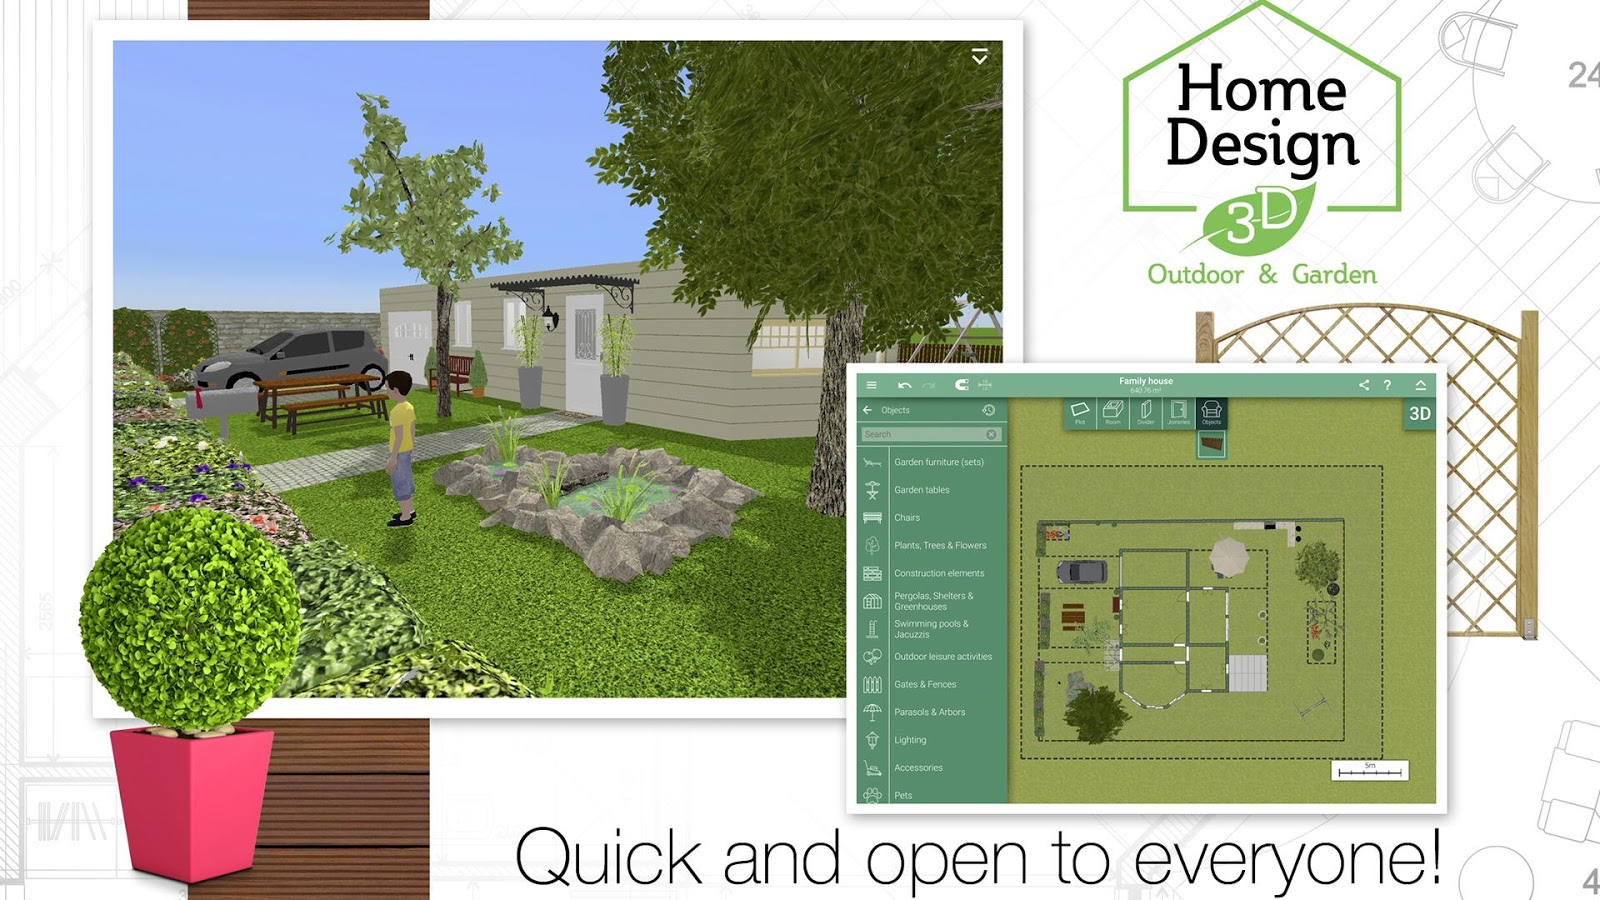 Home design 3d outdoor garden 4 0 8 apk obb data file for Home design 3d 5 0 crack